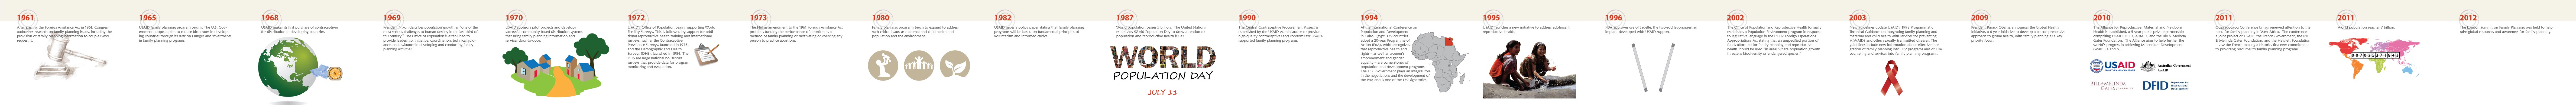 "<br /><br />         1961: After passing the Foreign Assistance Act in 1961, Congress authorizes research on family planning issues, including the provision of family planning information to couples who request it. </p> <p>        1965: USAID family planning program begins. The U.S. Government adopts a plan to reduce birth rates in developing countries through its War on Hunger and investments in family planning programs.</p> <p>        1968: USAID makes its first purchase of contraceptives for distribution in developing countries.</p> <p>        1969: President Nixon describes population growth as ""one of the most serious challenges to human destiny in the last third of this century."" The Office of Population is established to provide leadership, initiative, coordination, technical guidance, and assistance in developing and conducting family planning activities.</p> <p>        1970s: USAID sponsors pilot projects and develops successful community-based distribution systems that bring family planning information and services door-to-door.</p> <p>        1972: USAID's Office of Population begins supporting World Fertility Surveys. This is followed by support for additional reproductive health training and international surveys, such as the Contraceptive Prevalence Surveys, launched in 1975, and the Demographic and Health Surveys (DHS), launched in 1984. The DHS are large national household surveys that provide data for program monitoring and evaluation.</p> <p>        1973: The Helms amendment to the 1961 Foreign Assistance Act prohibits funding the performance of abortion as a method of family planning or motivating or coercing any person to practice abortions.</p> <p>        1980s: Family planning programs expand to address such critical issues as maternal and child health and population and the environment.</p> <p>        1982: USAID issues a policy paper stating that family planning programs will be based on fundamental principles of voluntarism and informed choice.</p> <p>        1987: World population passes 5 billion.  The United Nations establishes World Population Day to draw attention to population and reproductive health issues.</p> <p>        1990: The Central Contraceptive Procurement Project is established by the USAID Administrator to provide high-quality contraceptives and condoms for USAID-supported family planning programs. </p> <p>        1994: At the International Conference on Population and Development in Cairo, Egypt, 179 countries adopt a 20-year Programme of Action (PoA), which recognizes that reproductive health and rights – as well as women's empowerment and gender equality – are cornerstones of population and development programs. The U.S. Government plays an integral role in the negotiations and the development of the PoA and is one of the 179 signatories.</p> <p>        1995: USAID launches a new initiative to address adolescent reproductive health. </p> <p>        1996: FDA approves use of Jadelle, the two-rod levonorgestrel implant developed with USAID support.</p> <p>        2002: The Office of Population and Reproductive Health formally establishes a Population-Environment program in response to legislative language in the FY 02 Foreign Operations Appropriations Act stating that an unspecified portion of funds allocated for family planning and reproductive health should be used ""in areas where population growth threatens biodiversity or endangered species.""</p> <p>        2003: New guidelines update USAID's 1998 Programmatic Technical Guidance on integrating family planning and maternal and child health with services for preventing HIV/AIDS and other sexually transmitted diseases. The guidelines include new information about effective integration of family planning into HIV programs and of HIV counseling and services into family planning programs.</p> <p>        2009: President Barack Obama announces the Global Health Initiative, a 6-year initiative to develop a co-comprehensive approach to global health, with family planning as a key priority focus.  </p> <p>        2010: The Alliance for Reproductive, Maternal and Newborn Health is established, a 5-year public-private partnership comprising USAID, DFID, AusAID, and the Bill & Melinda Gates Foundation.  The Alliance aims to help further the world's progress in achieving Millennium Development Goals 5 a and b.  </p> <p>        2011: Ouagadougou Conference brings renewed attention to the need for family planning in West Africa.  The conference – a joint project of USAID, the French Government, the Bill & Melinda Gates Foundation, and the Hewlett Foundation – saw the French making a historic, first-ever commitment to providing resources to family planning programs.</p> <p>        2011: World population reaches 7 billion.</p> <p>        2012: The London Summit on Family Planning was held to help raise global resources and awareness for family planning."